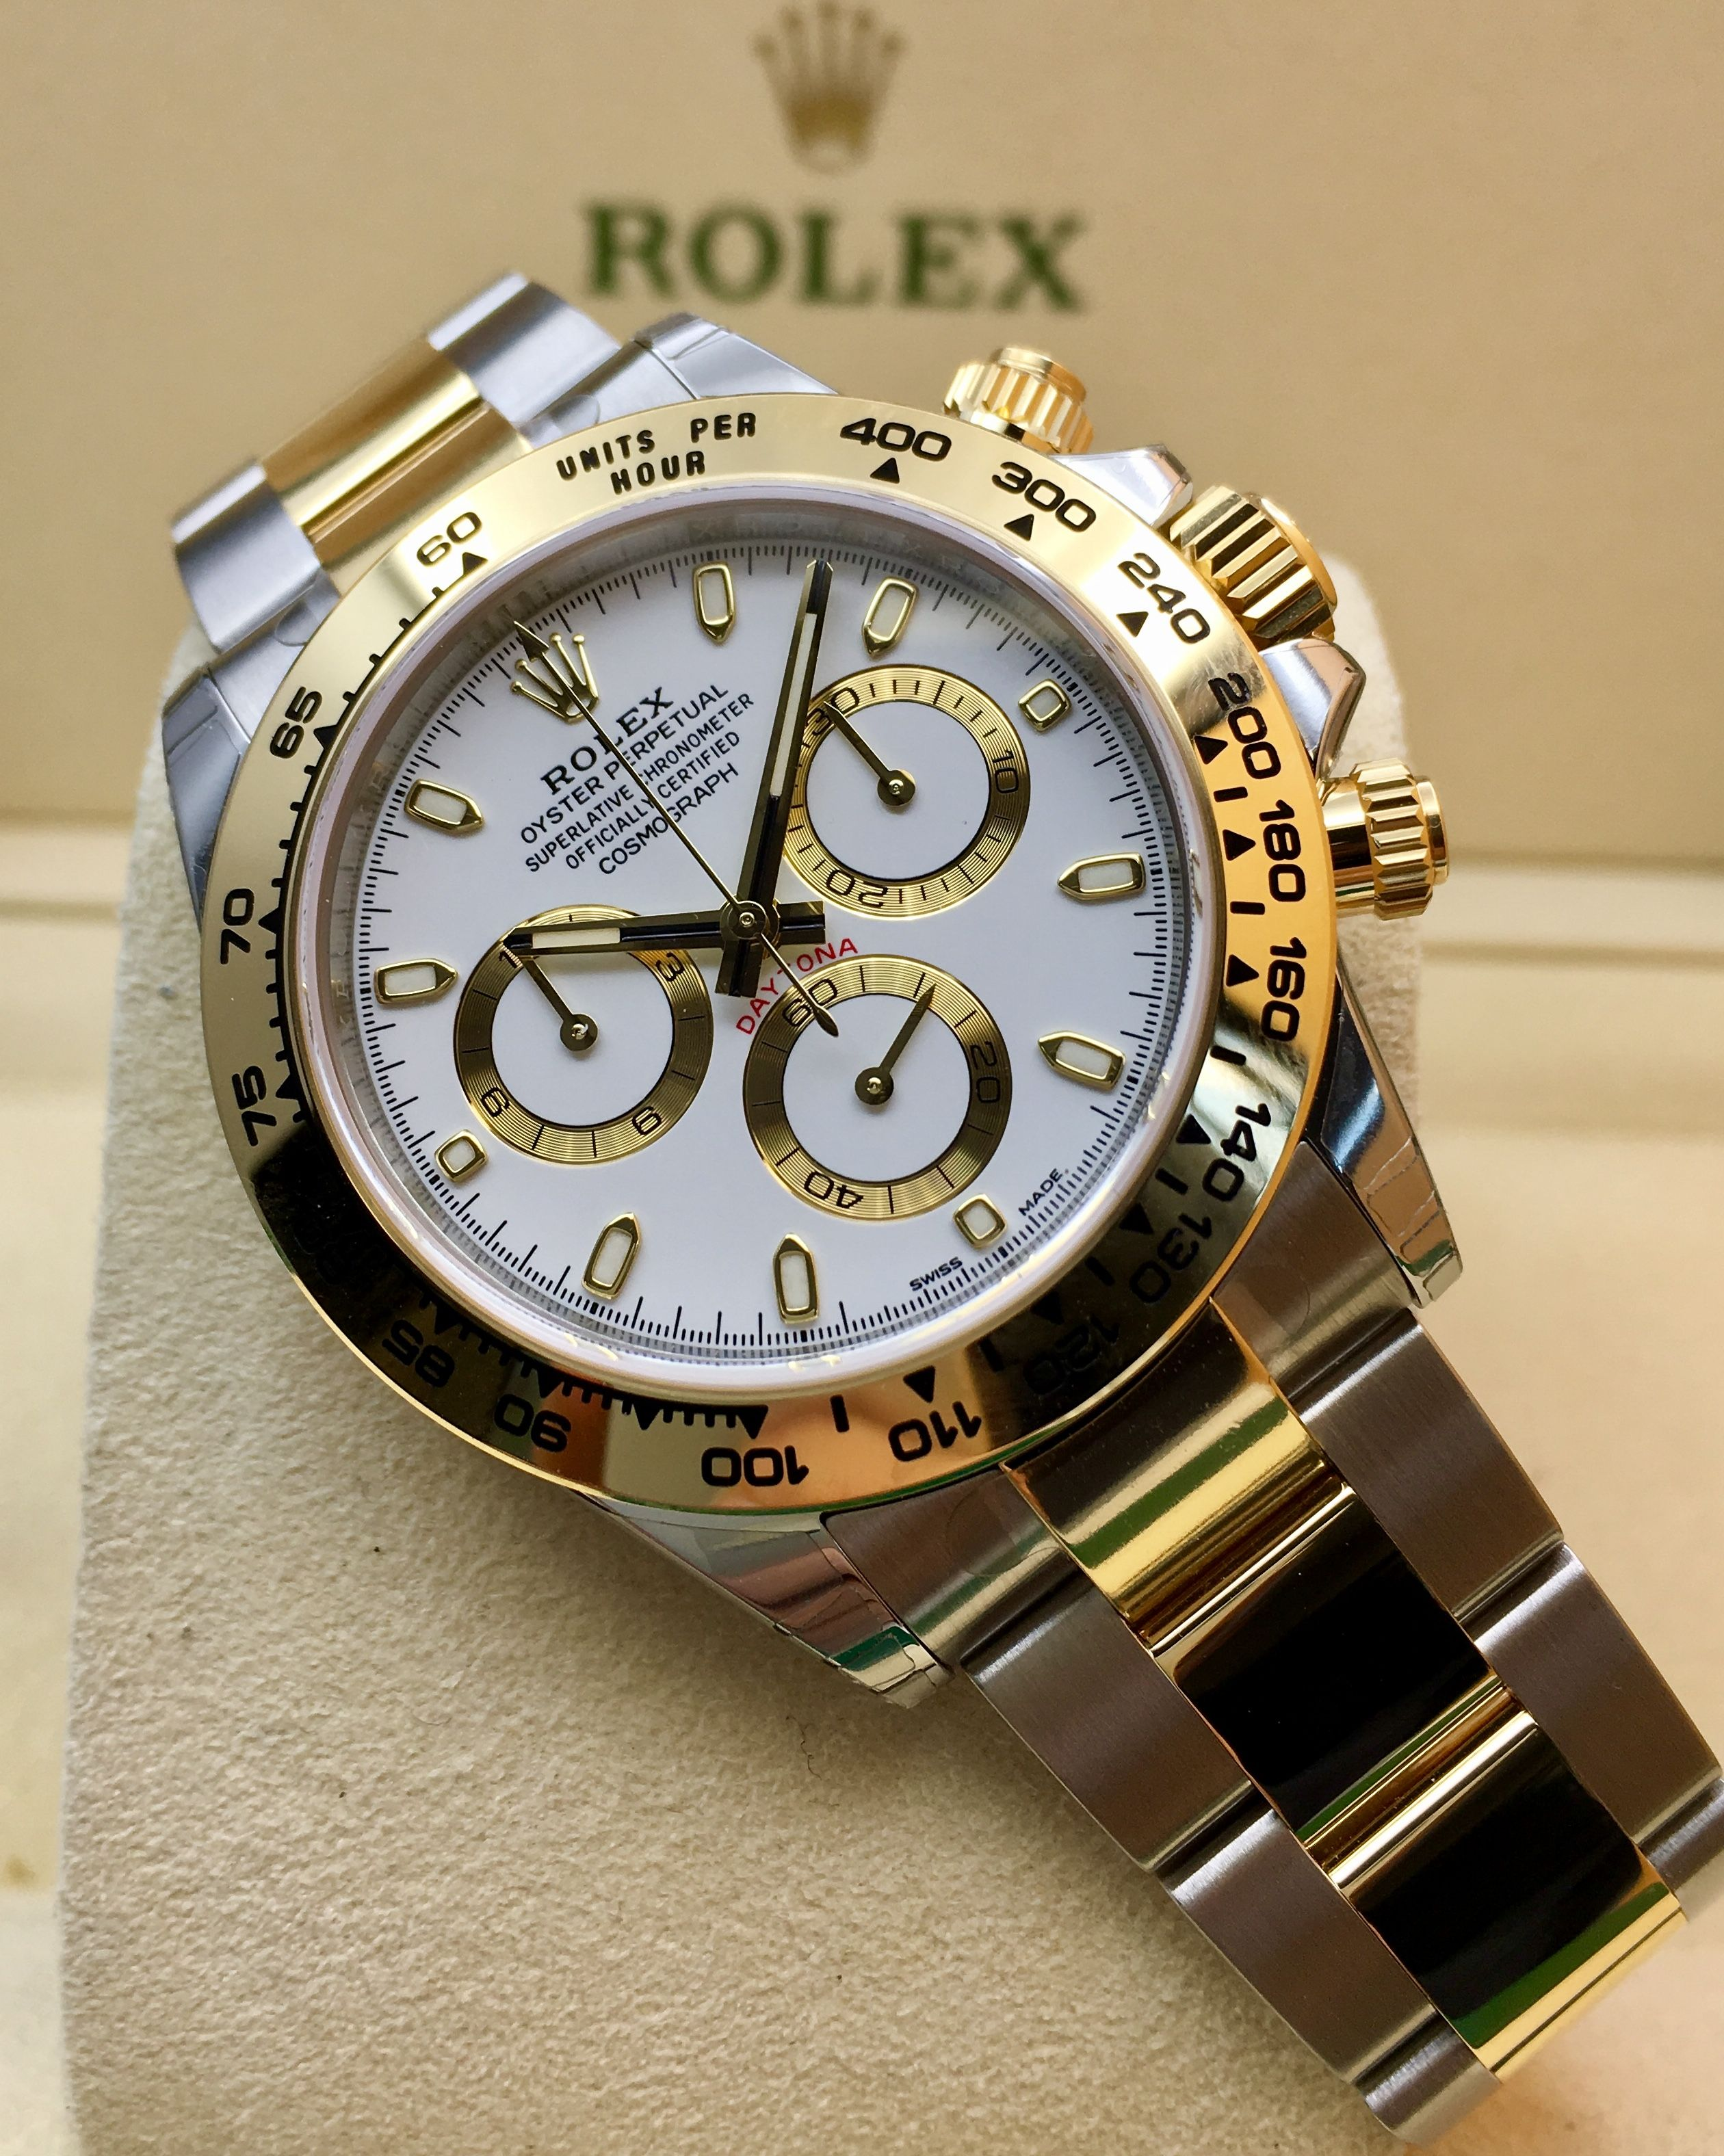 Rolex Daytona Steel Gold White Dial 116503 Timekeepers Rolex